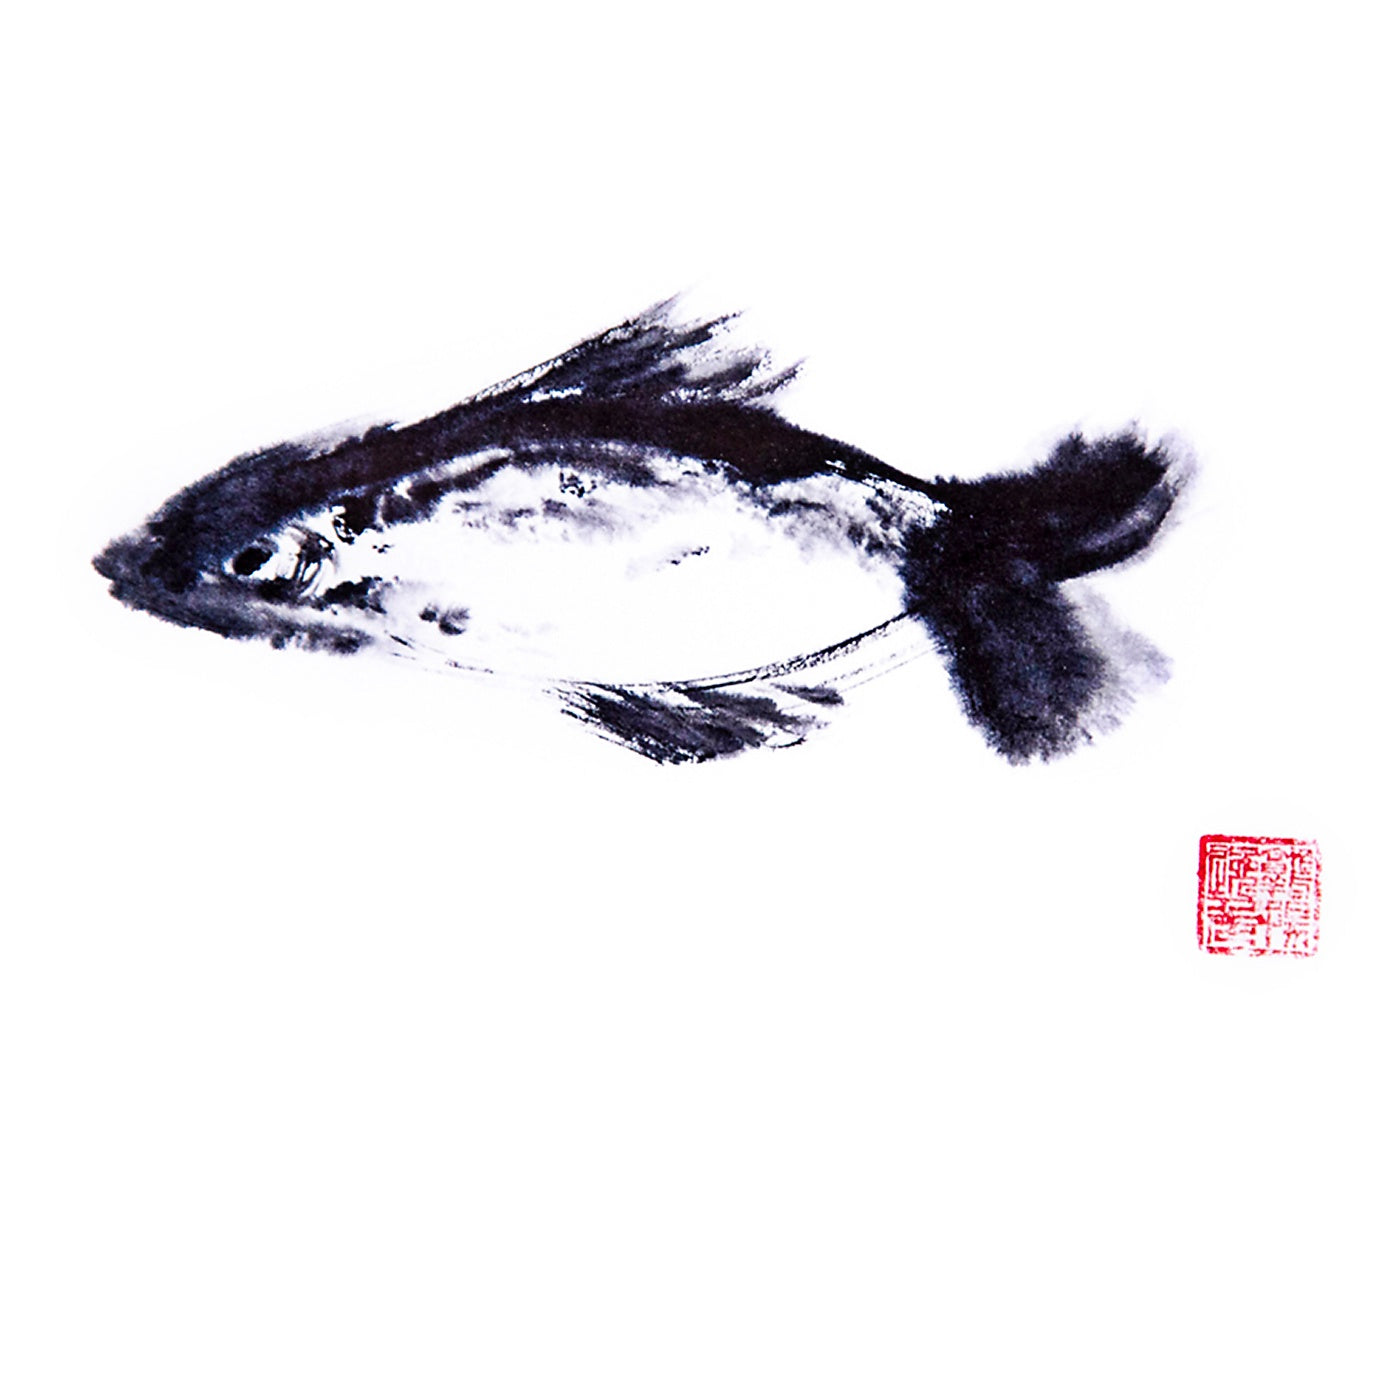 Artcards.Ink - Art Print - Fish